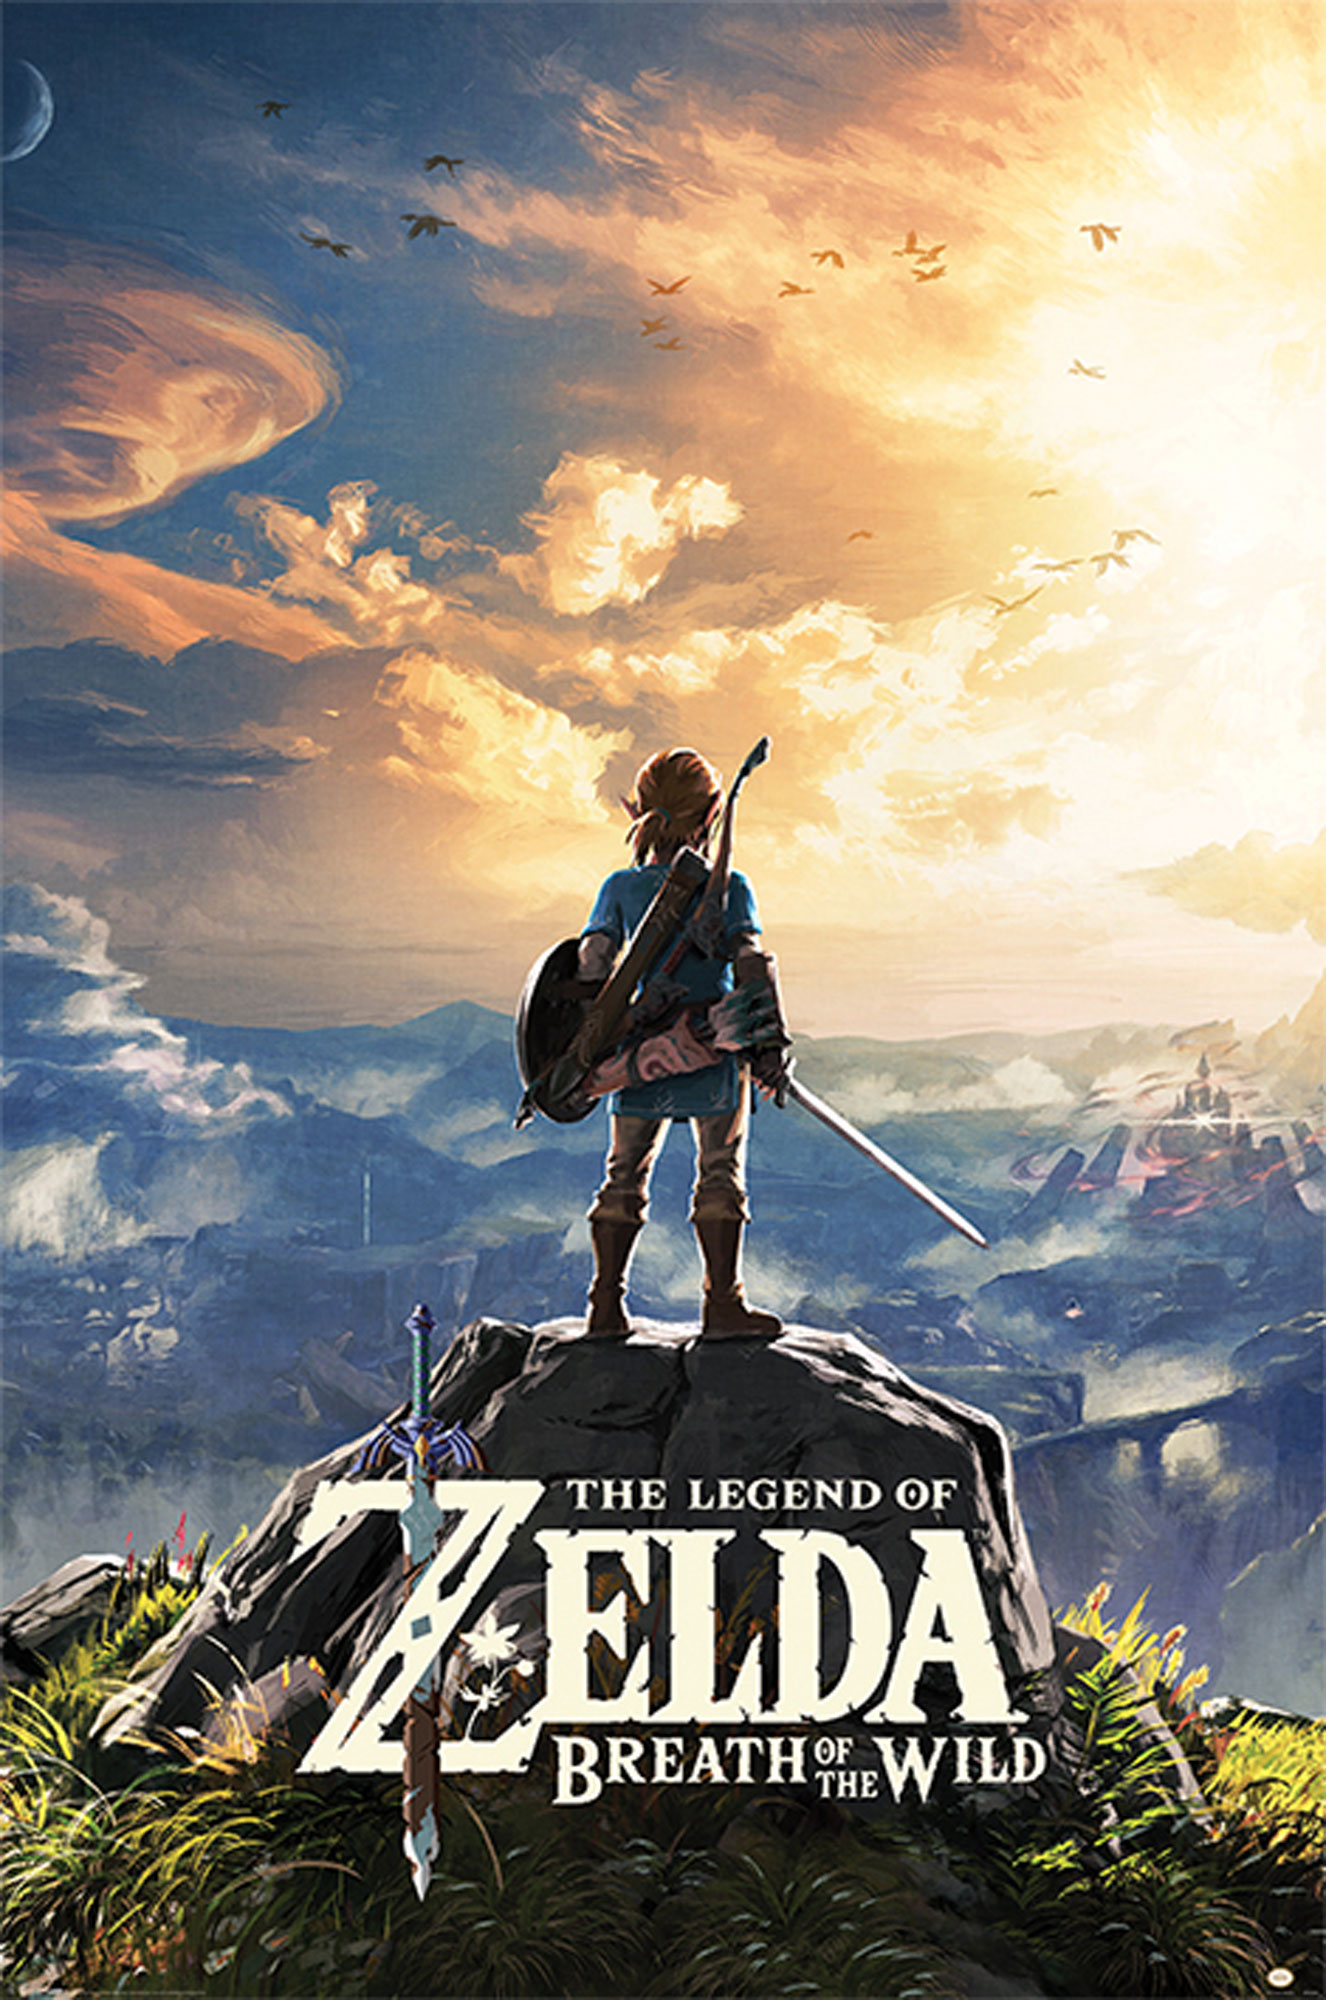 Legend Of Zelda Breath Of The Wild Königliche Küche The Legend Of Zelda Breath Of The Wild Sunset Poster